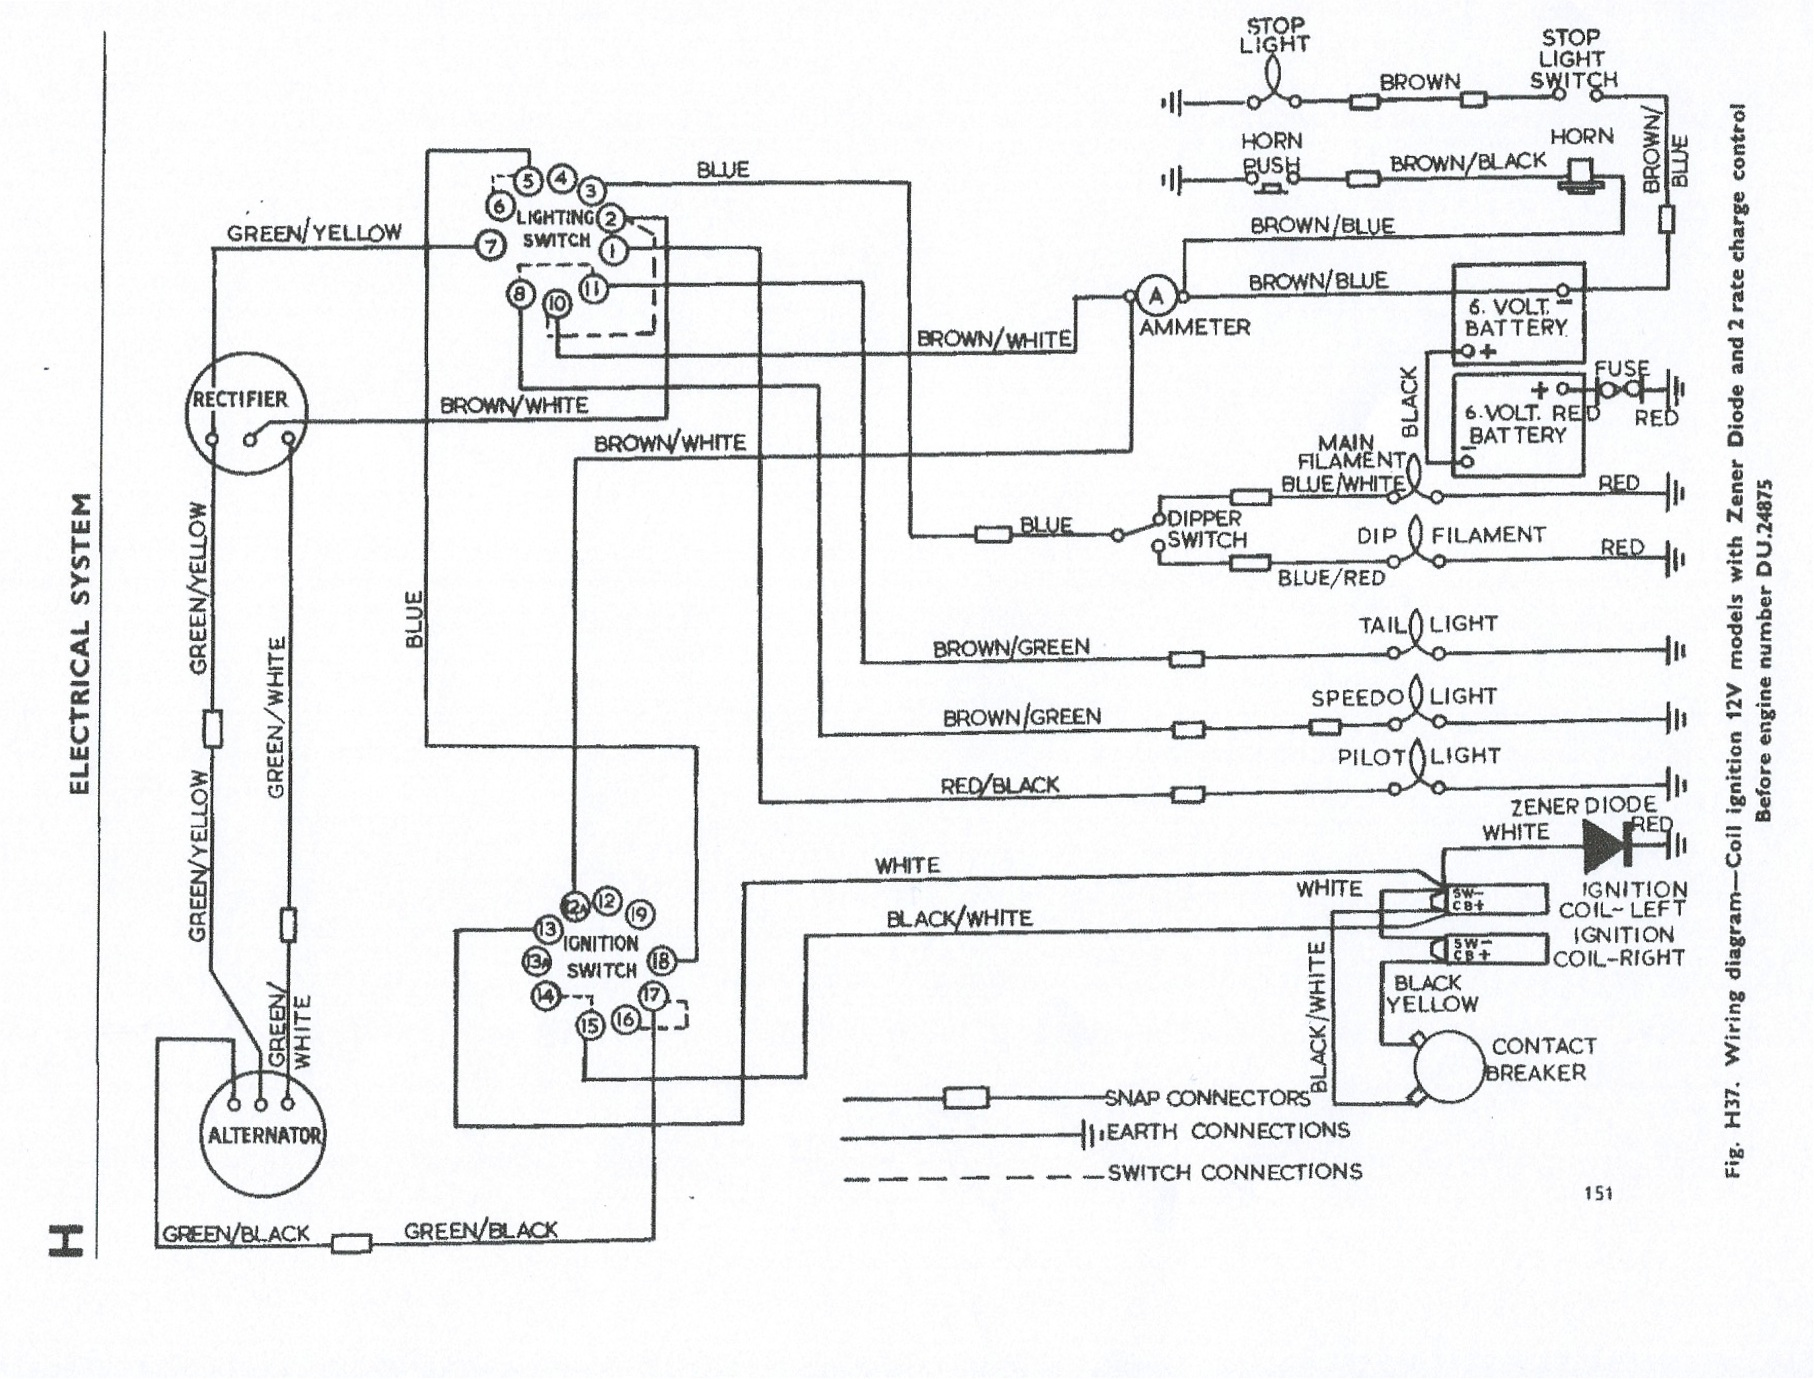 Wiring Diagram 2010 Triumph Thruxton Diagrams Image Free Schematic Rectifier Page 4 Forum Rat Motorcycle Forumsrhtriumphrat At Gmaili